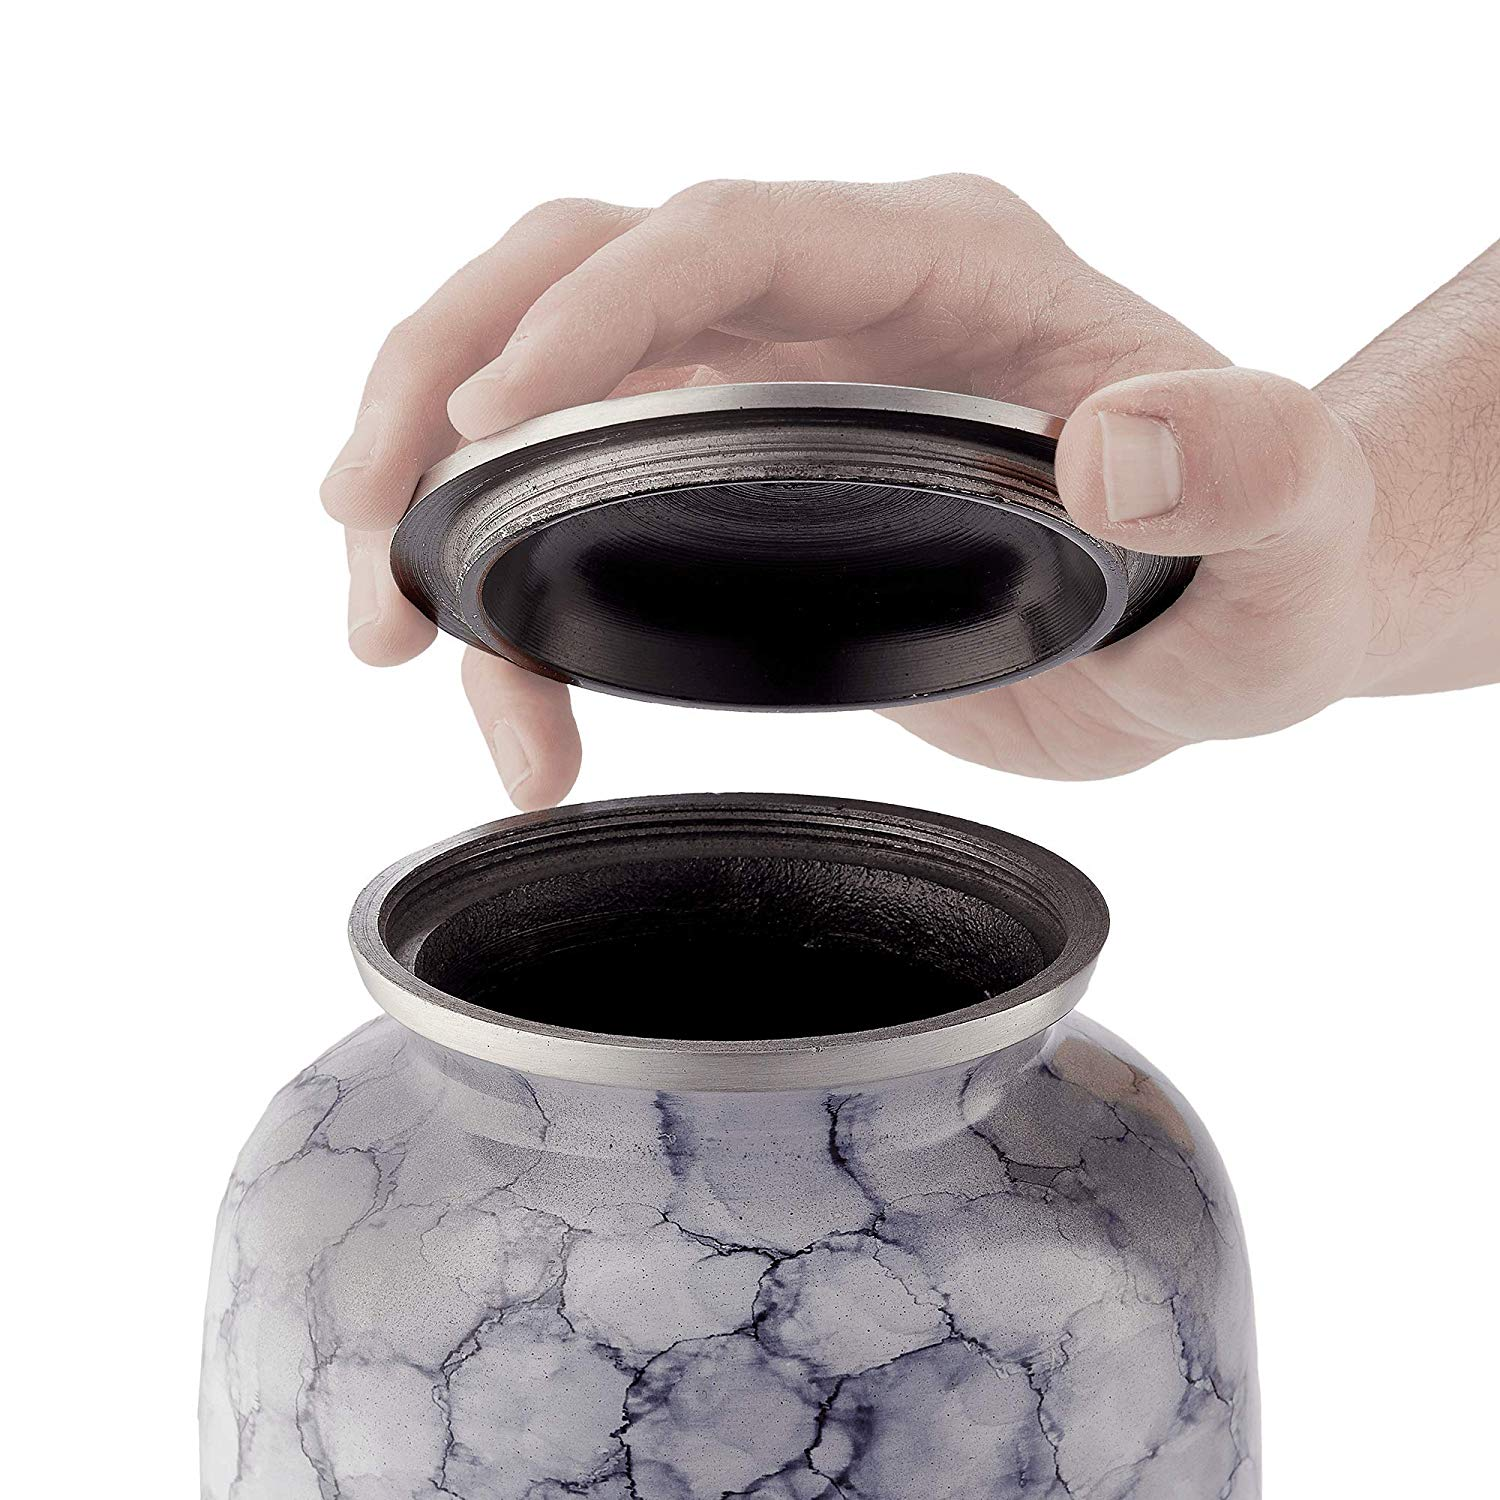 Cremation Urn for Ashes, for Adults up to 200lbs, Grey